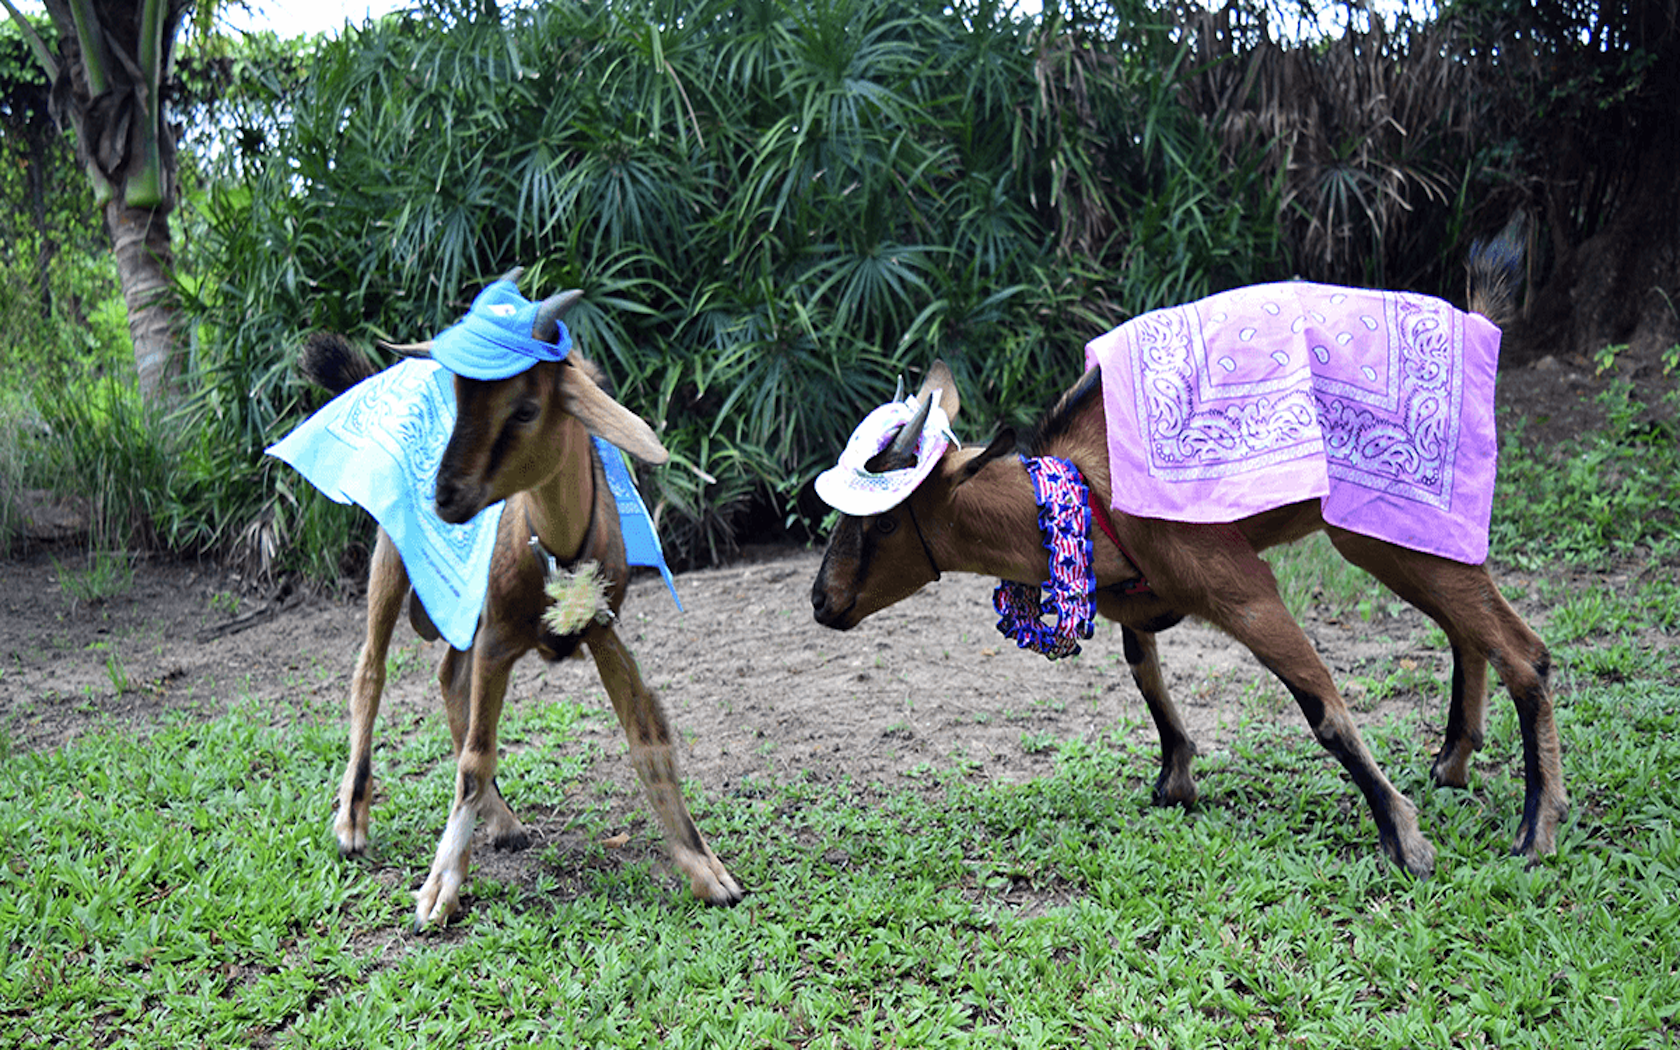 Sunset Palms Resort Introduces Picnics With Their Pet Goat